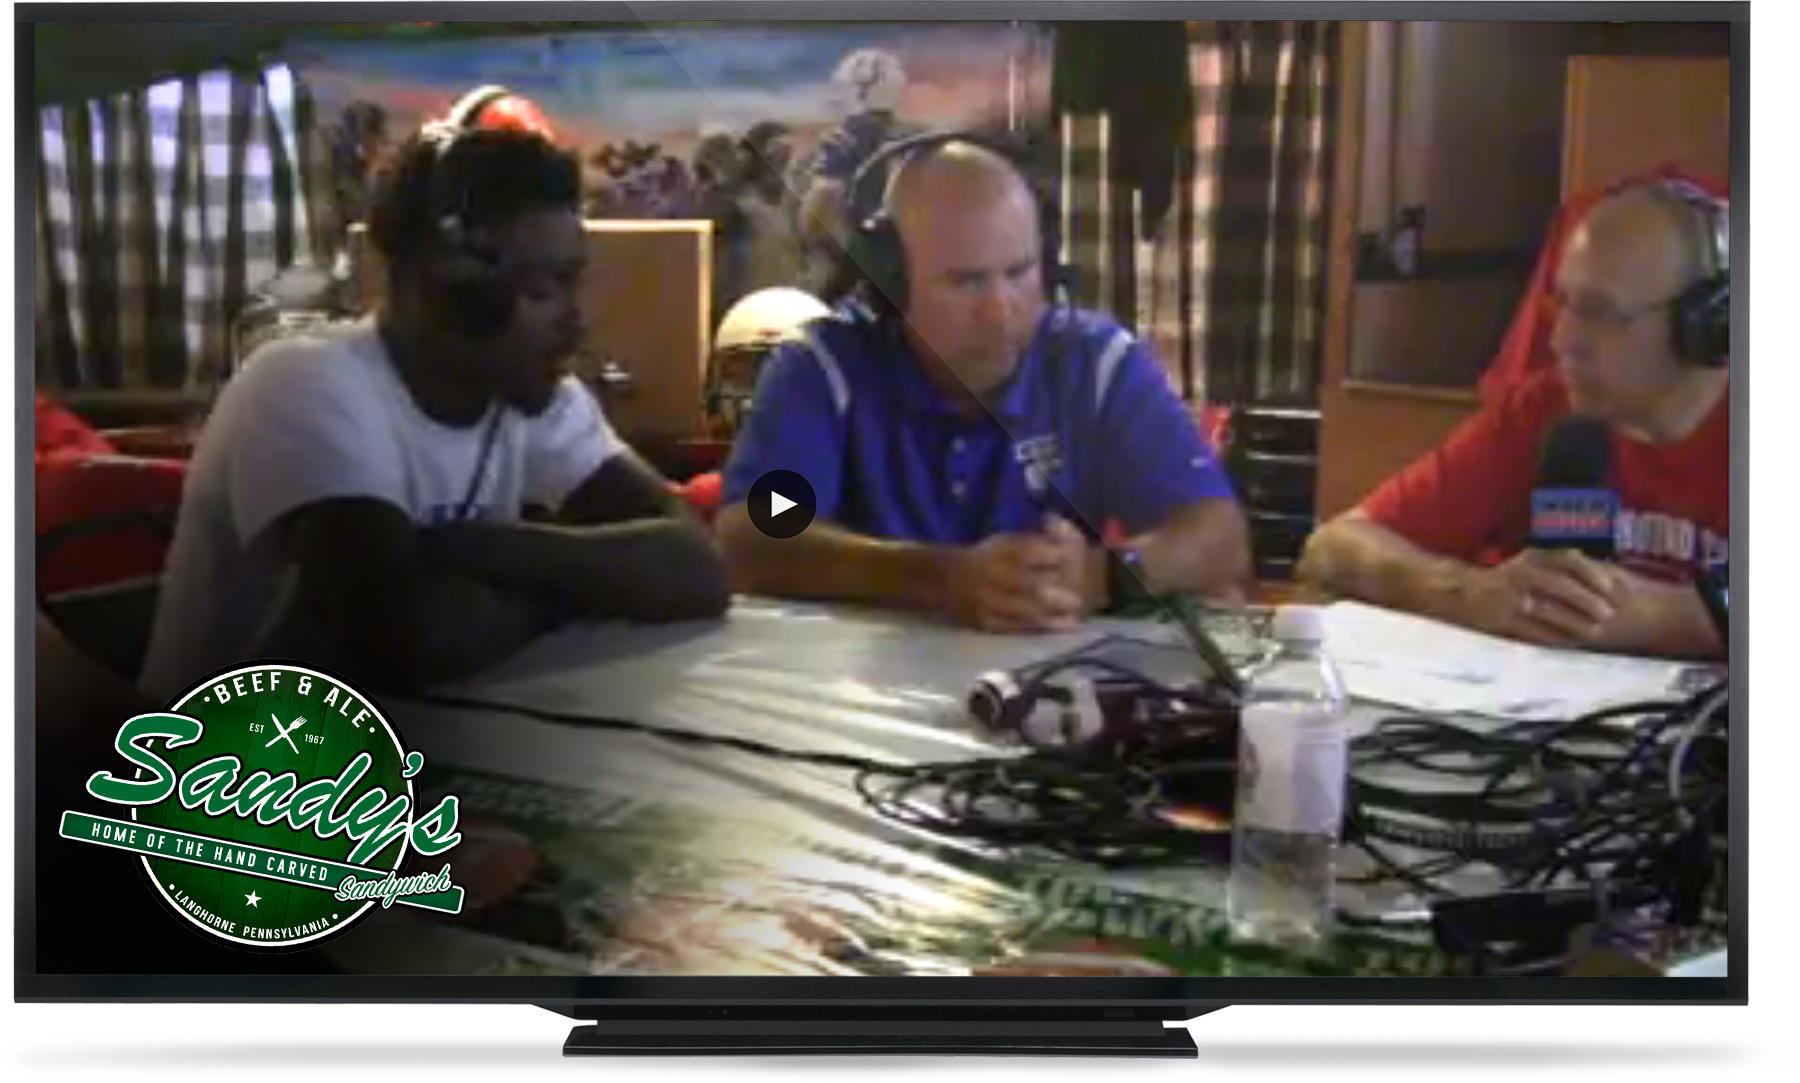 Live streaming of the Coaches Roundtable on WBCB 1490